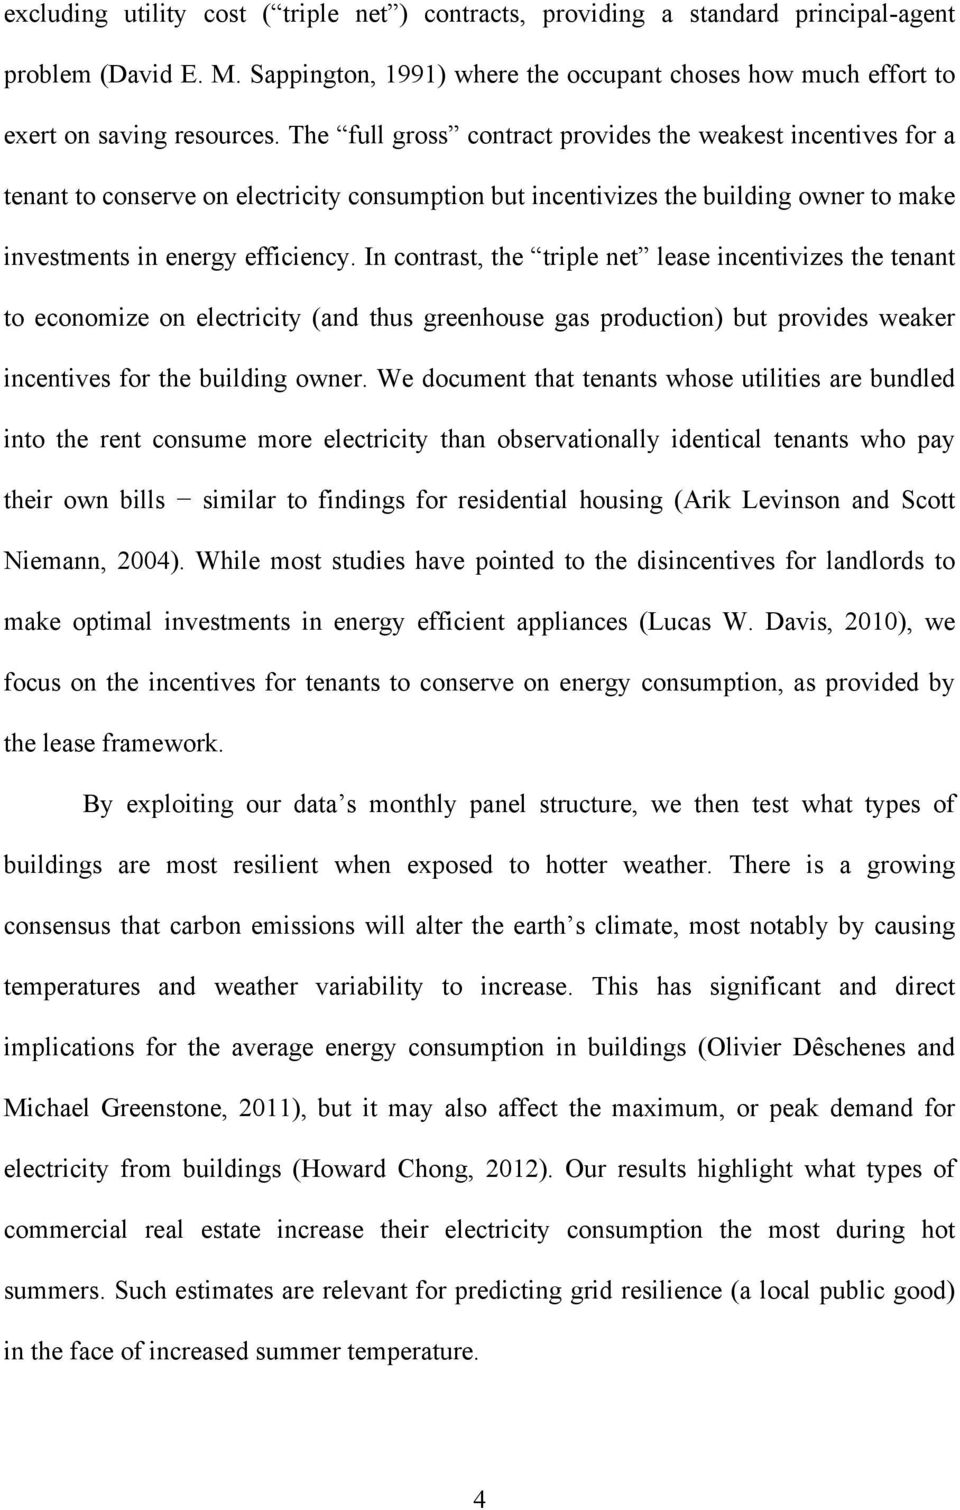 In contrast, the triple net lease incentivizes the tenant to economize on electricity (and thus greenhouse gas production) but provides weaker incentives for the building owner.